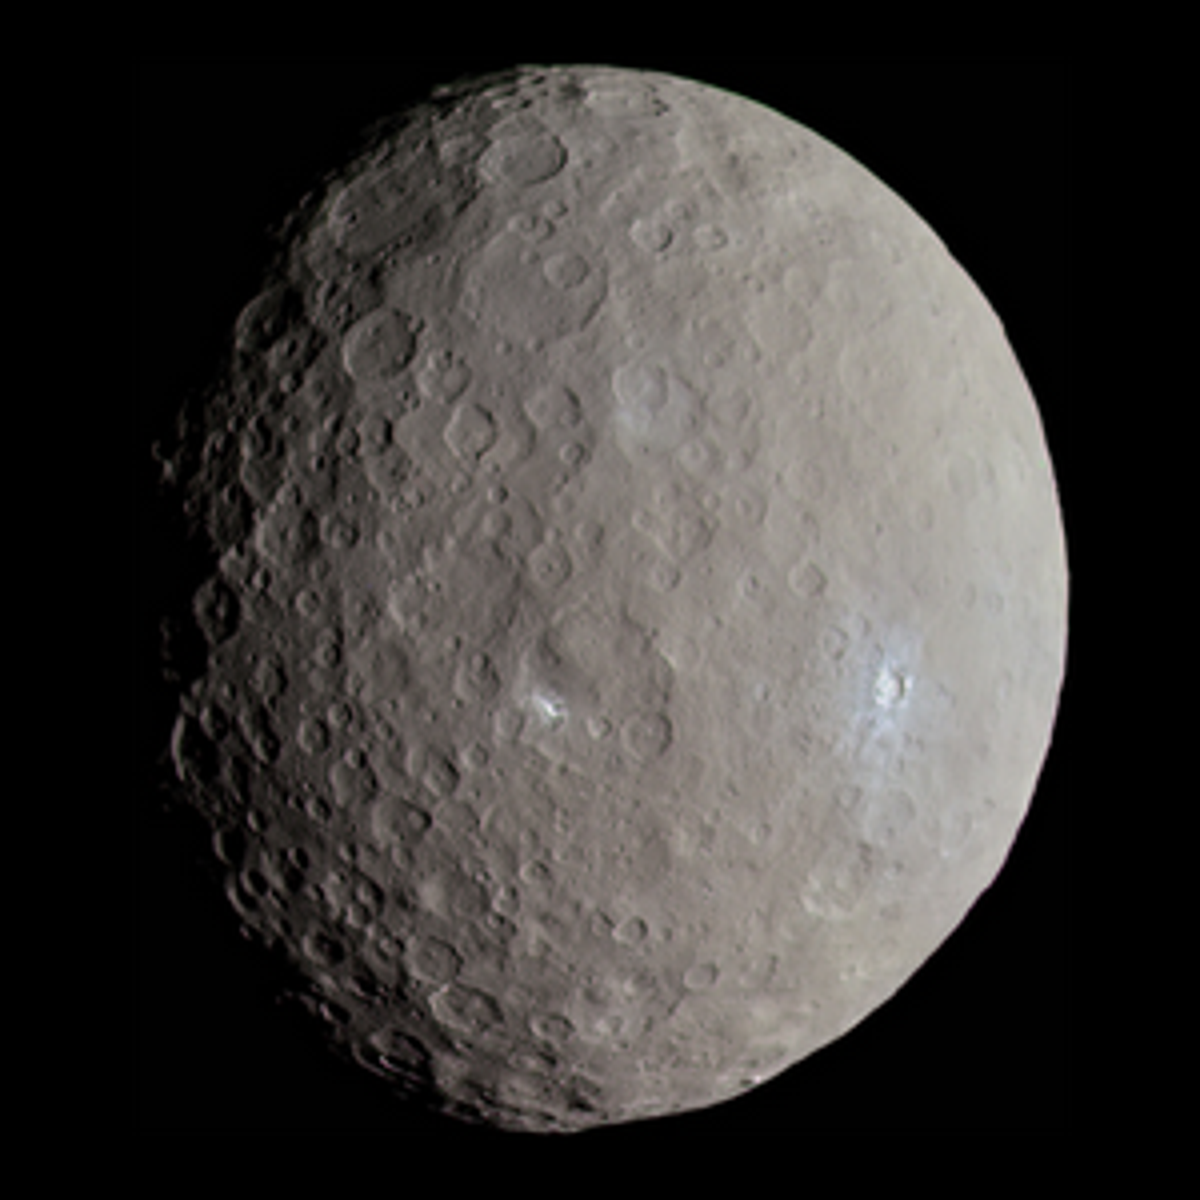 Ceres, as seen by the Dawn space probe.